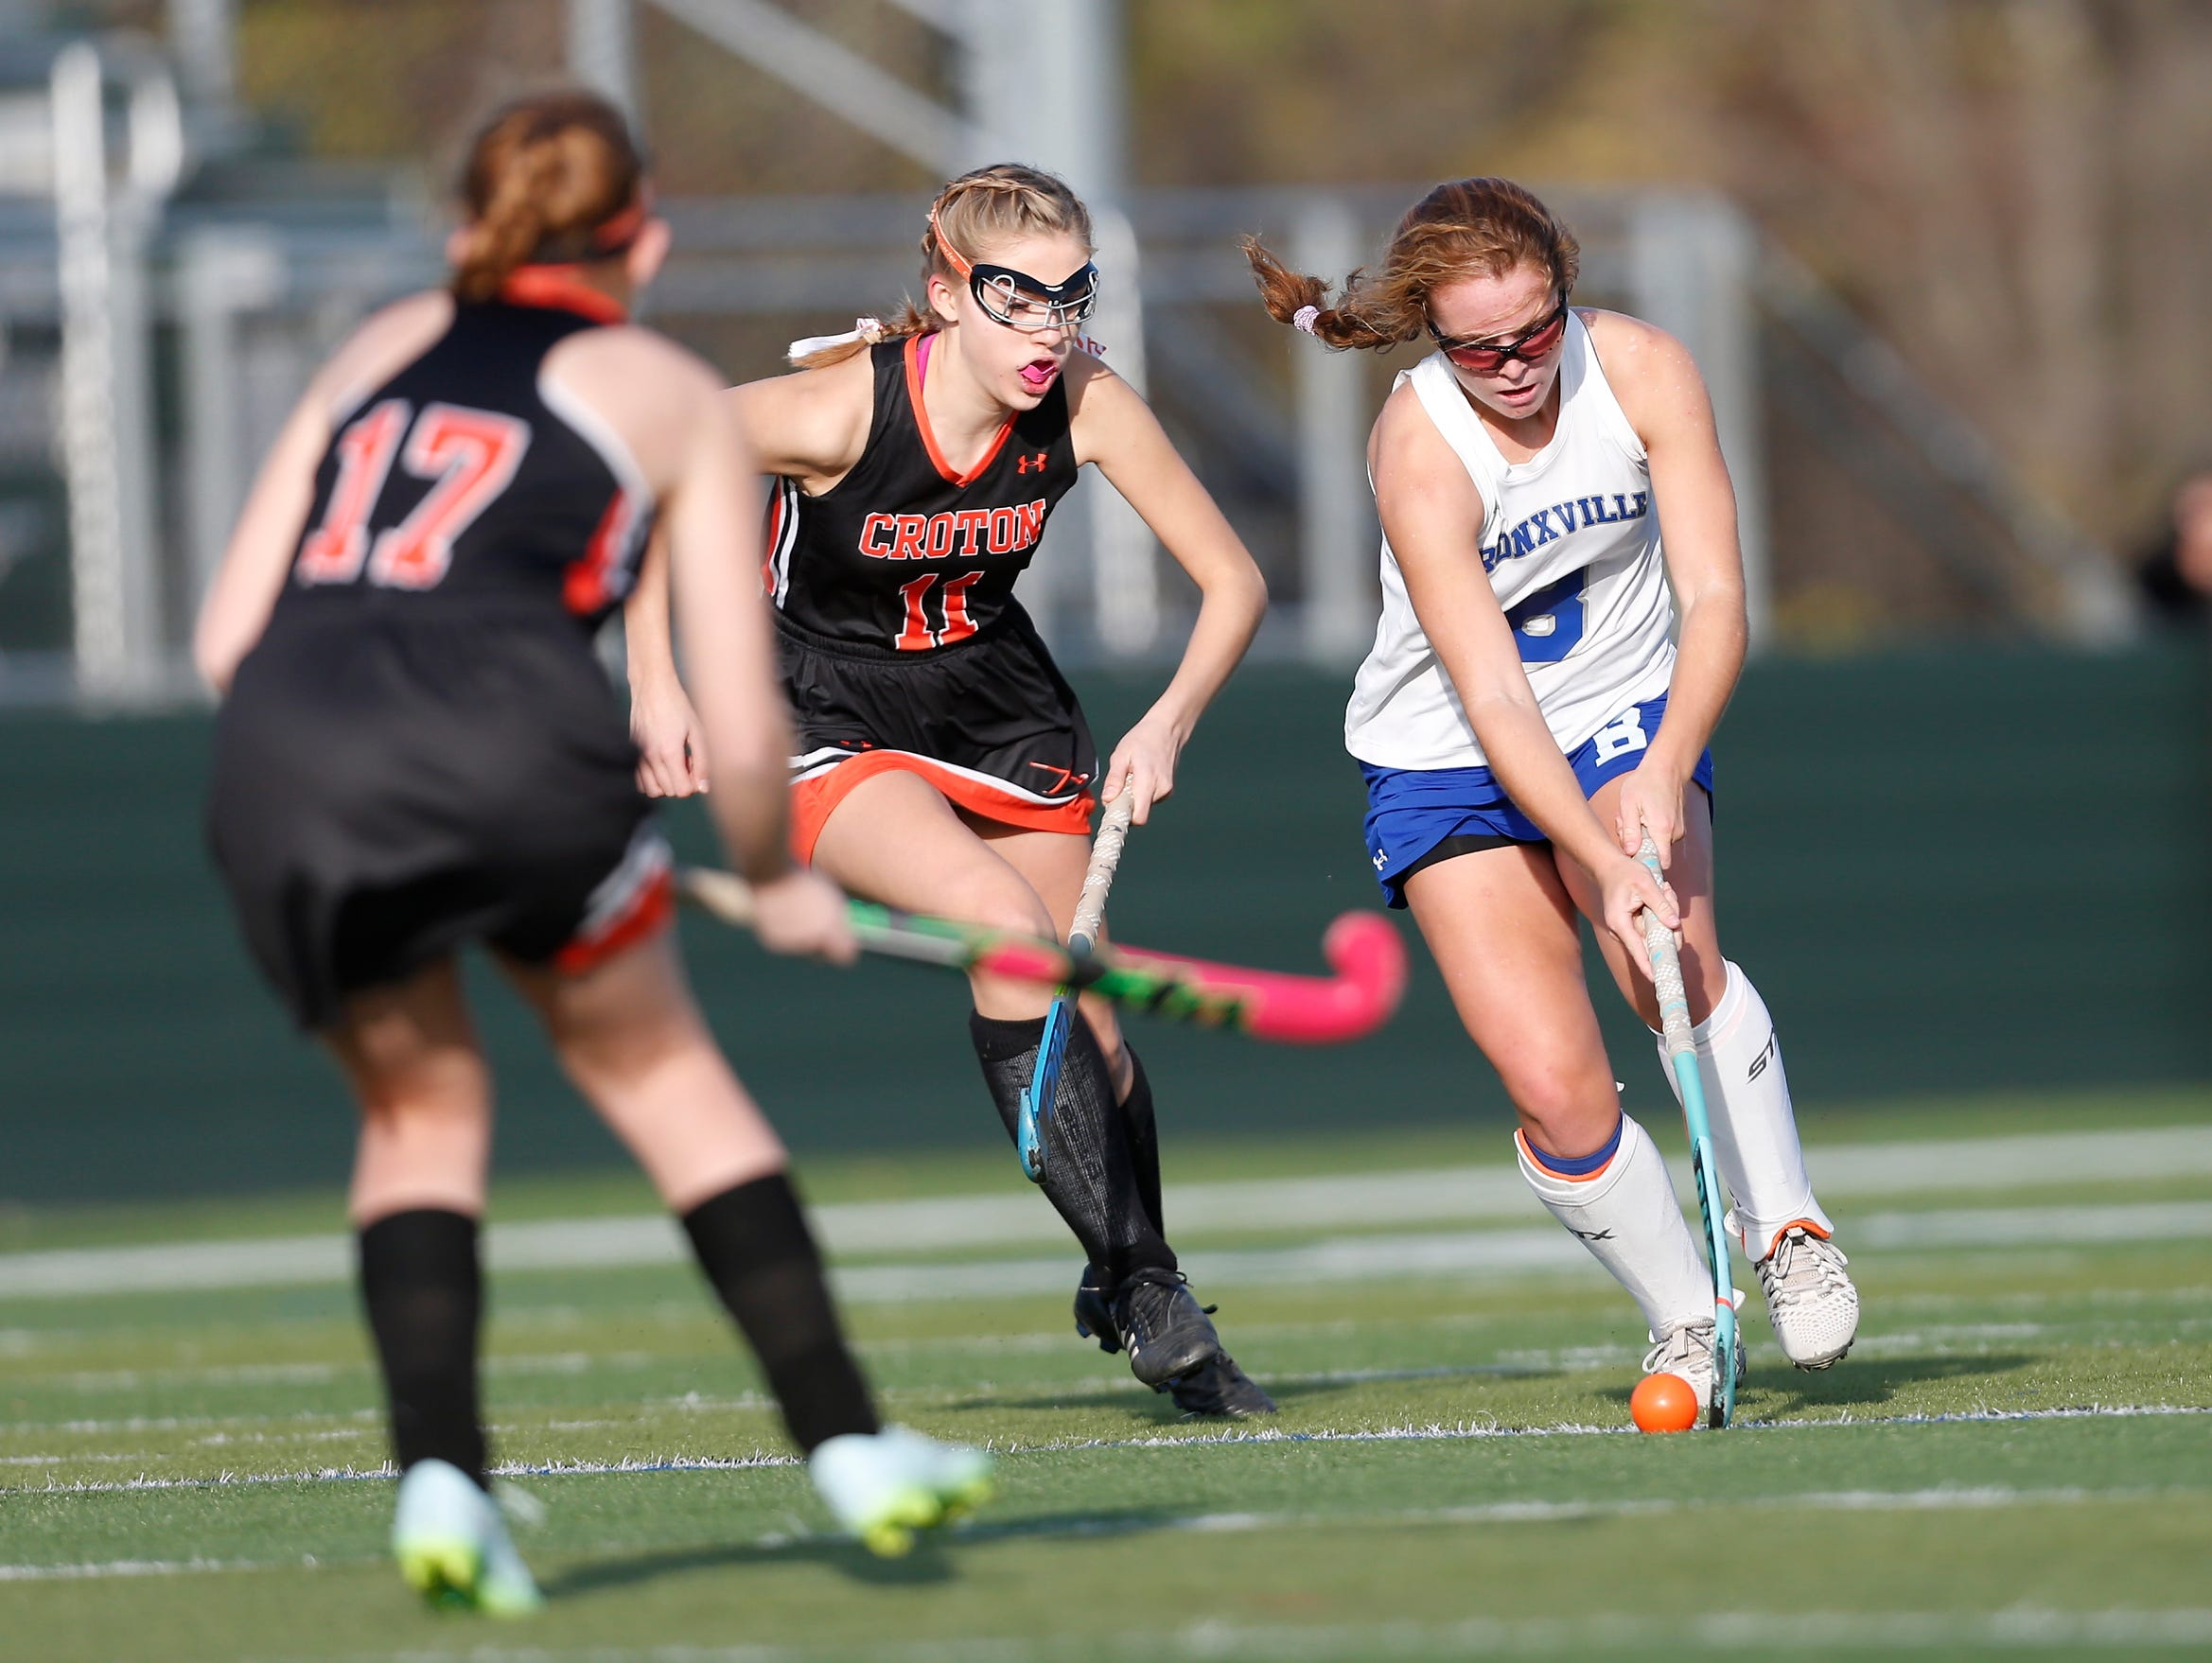 Bronxville's Ellie Walsh (8) works the ball past Croton's Julia Danett (11) during their 7-1 win in the Class C field hockey sectiion finals at Brewster High School on Tuesday, November 1, 2016.